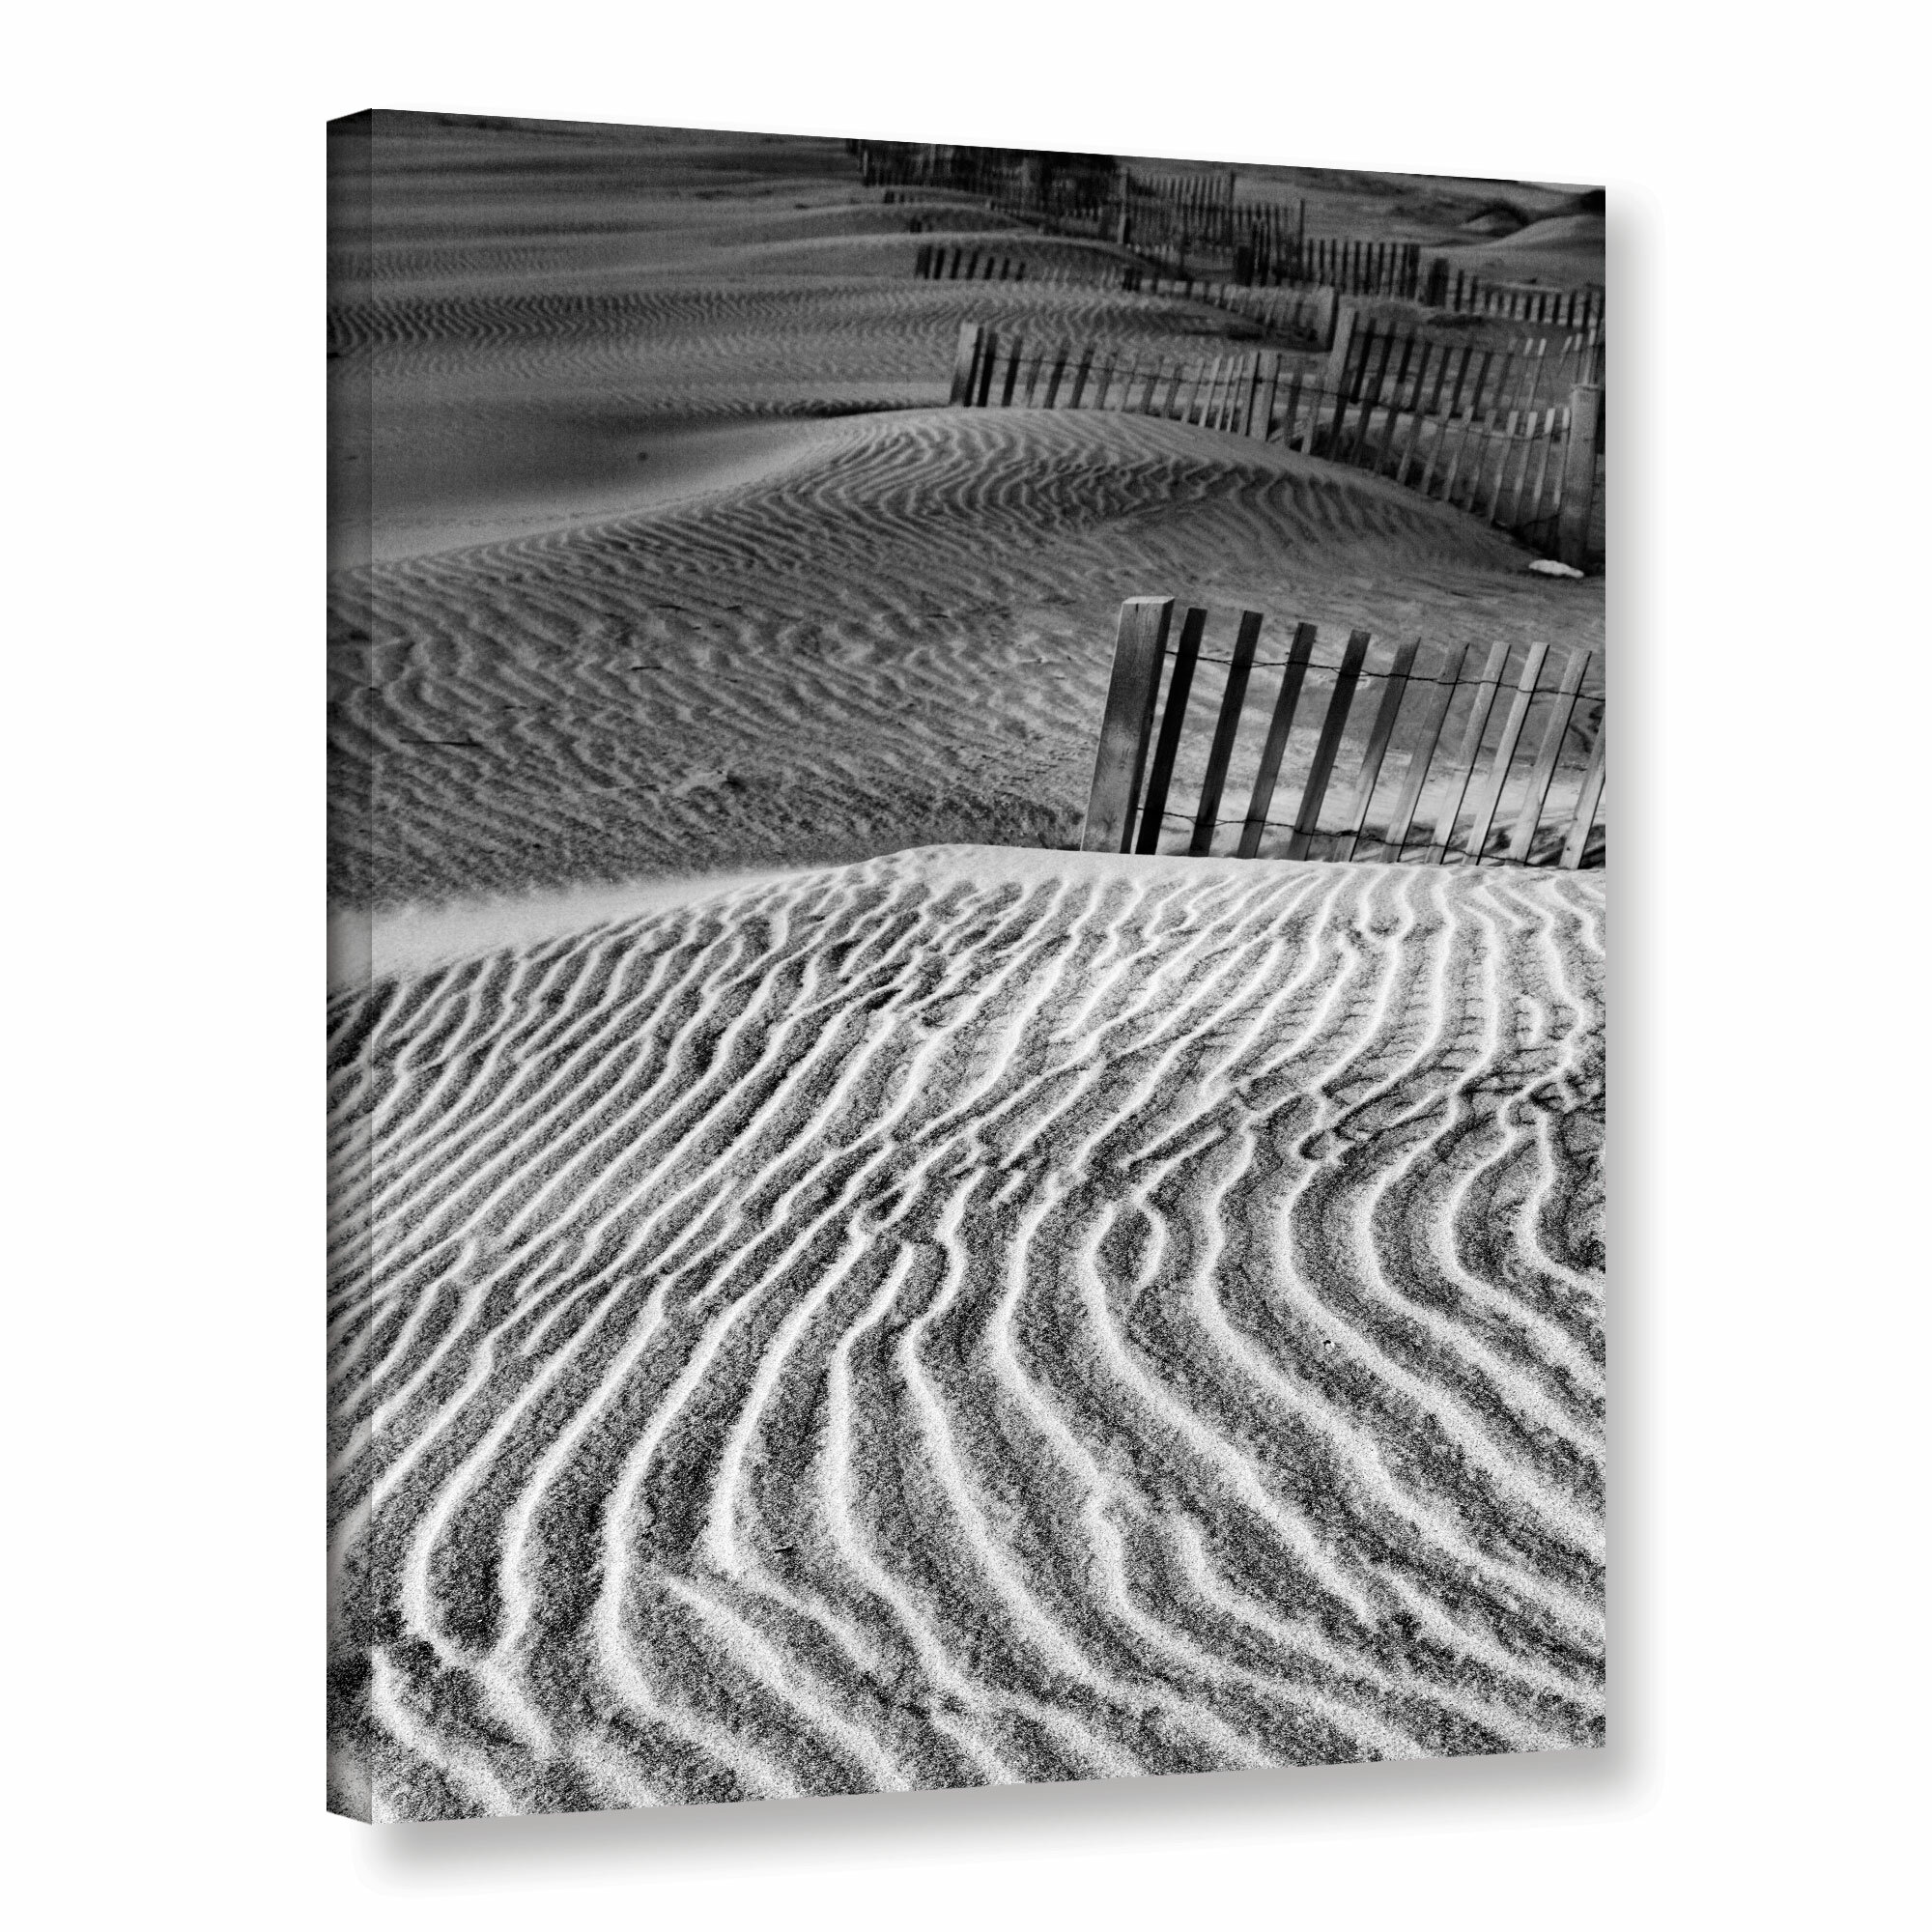 Artwall Dune Patterns By Steve Ainsworth Photographic Print On Wrapped Canvas Wayfair